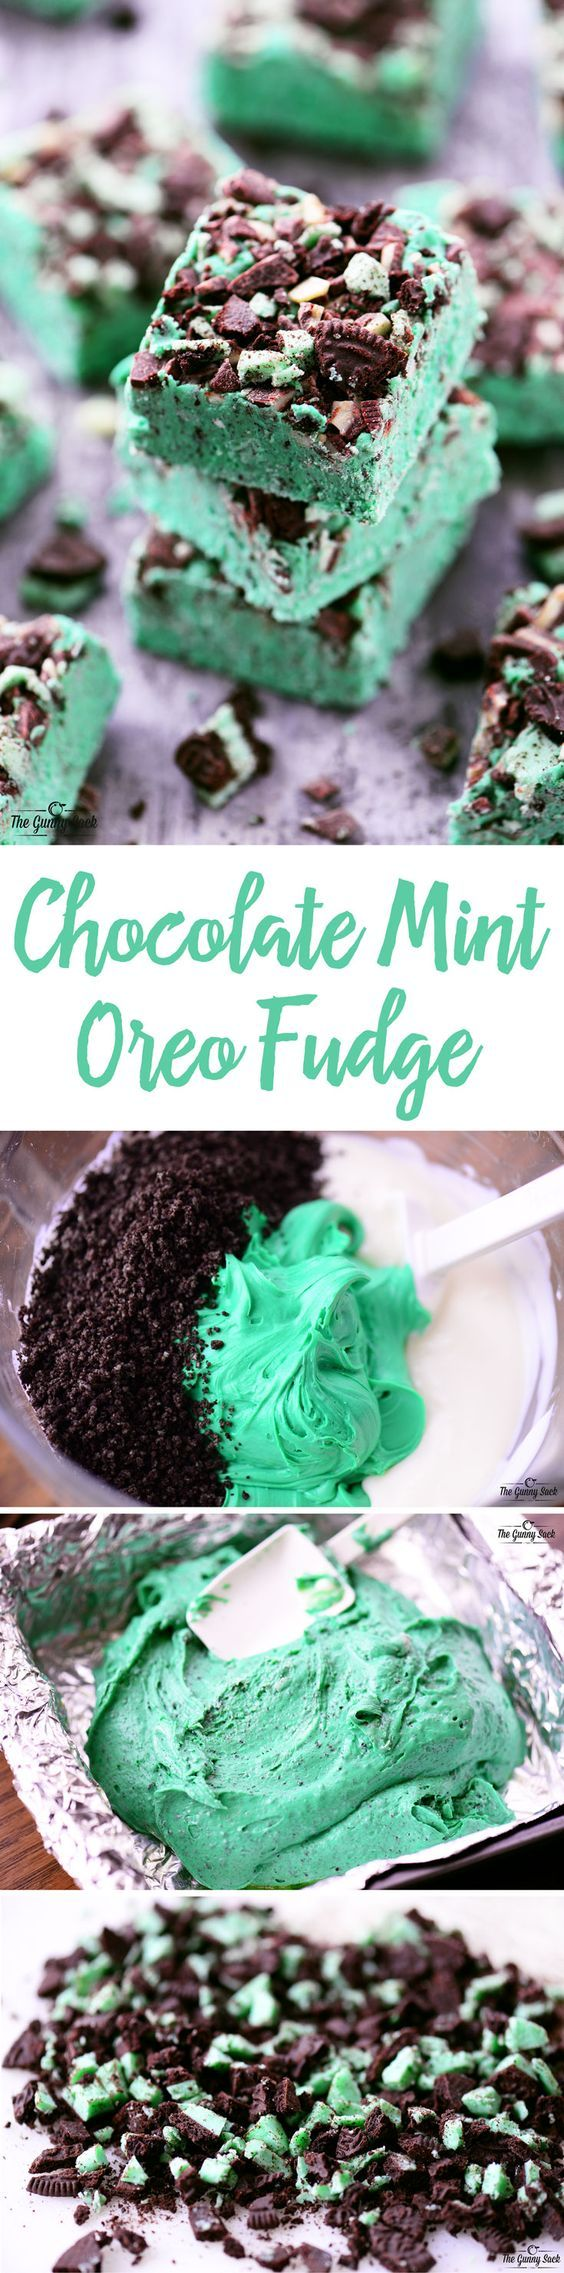 This Chocolate Mint Oreo Fudge recipe is smooth and creamy with crunchy bits of mint Oreos and Andes mints. It's easy to make with only five ingredients.